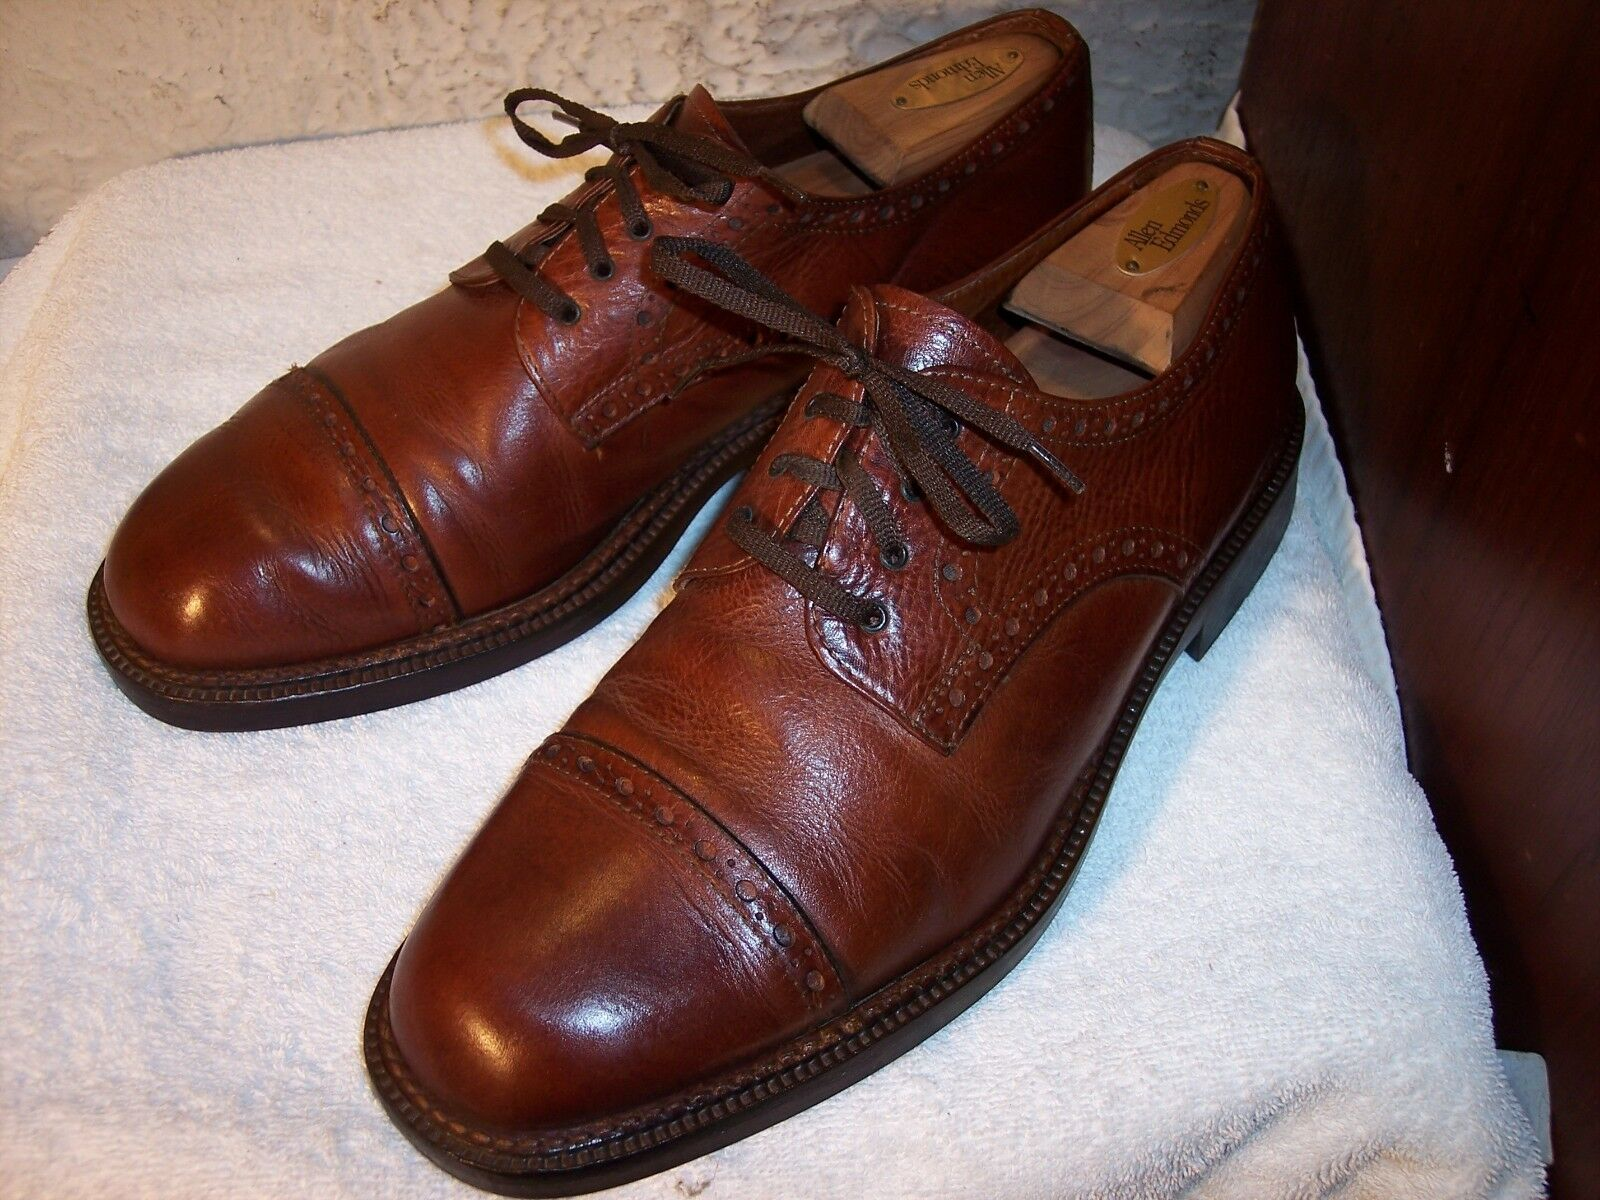 Morris Firenze Bench Made size 10.5 (44) Brown Leather Cap Toe Derby shoes